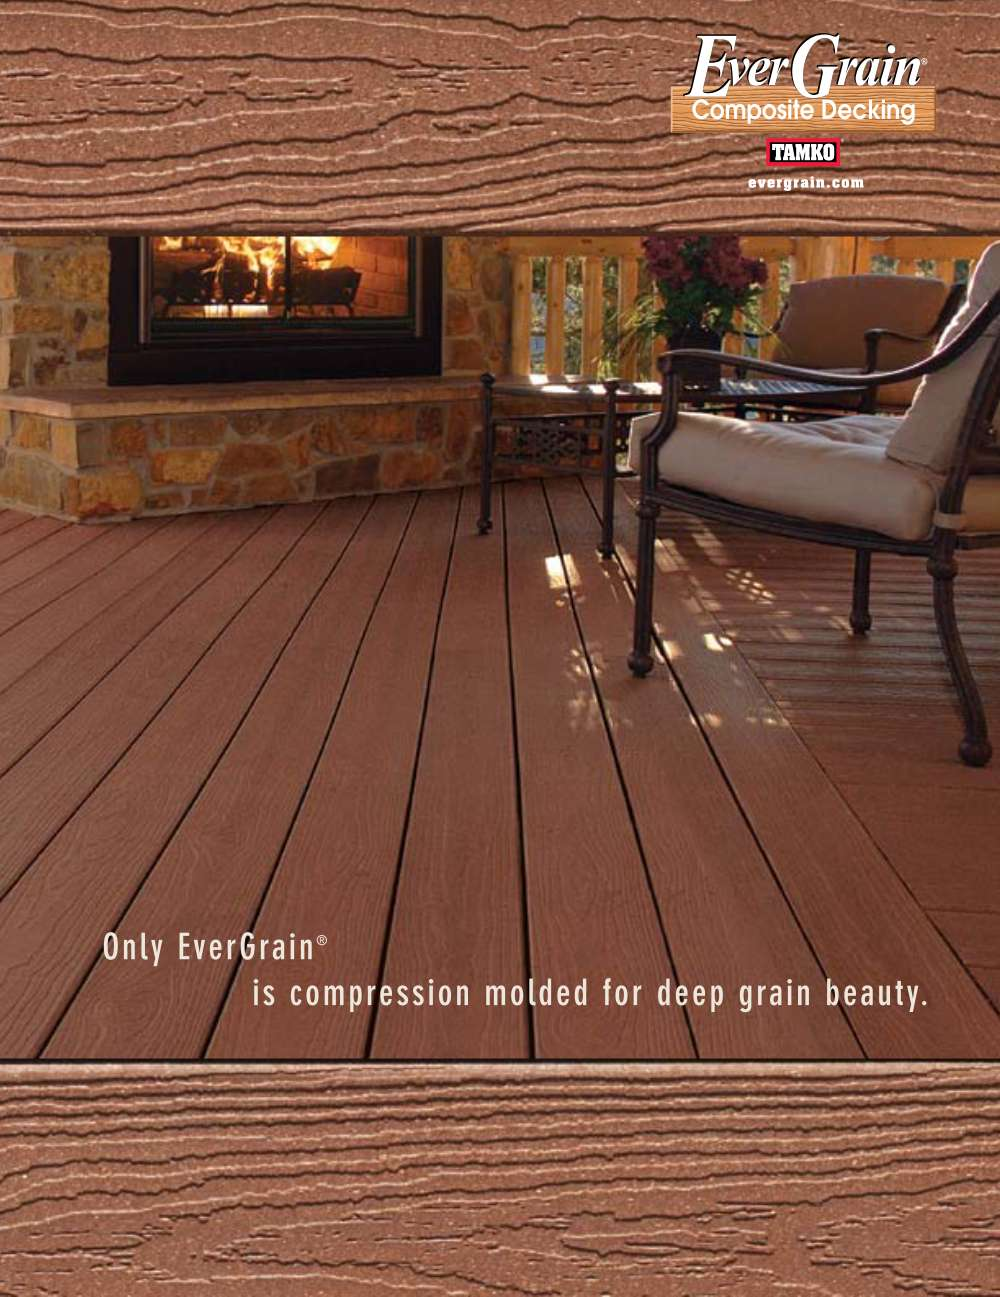 wooden dark brown evergrain decking plus sofa set and fireplace for patio decor ideas